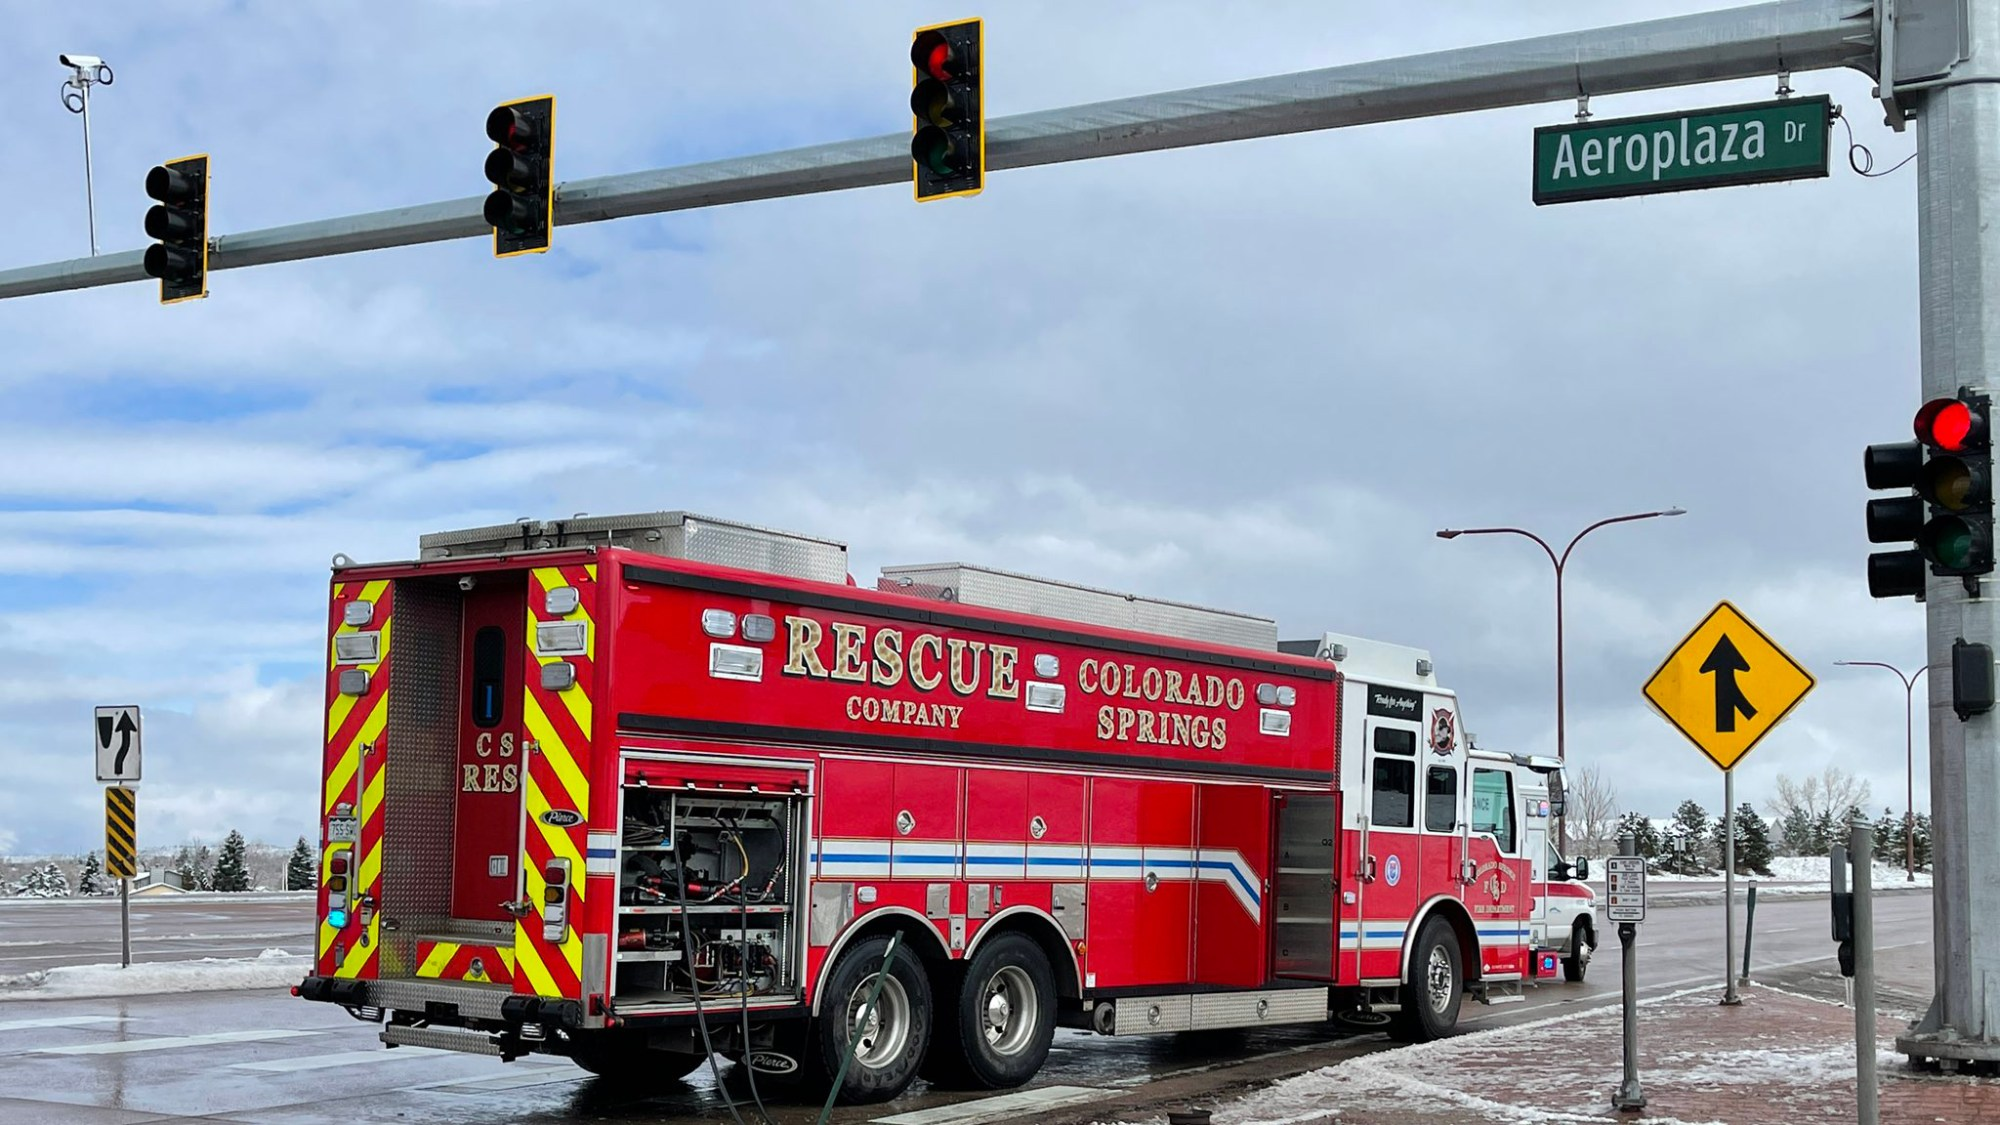 Crews respond to a crash at the intersection of Powers Boulevard and Aeroplaza Drive Friday morning. / Courtesy Colorado Springs Fire Department